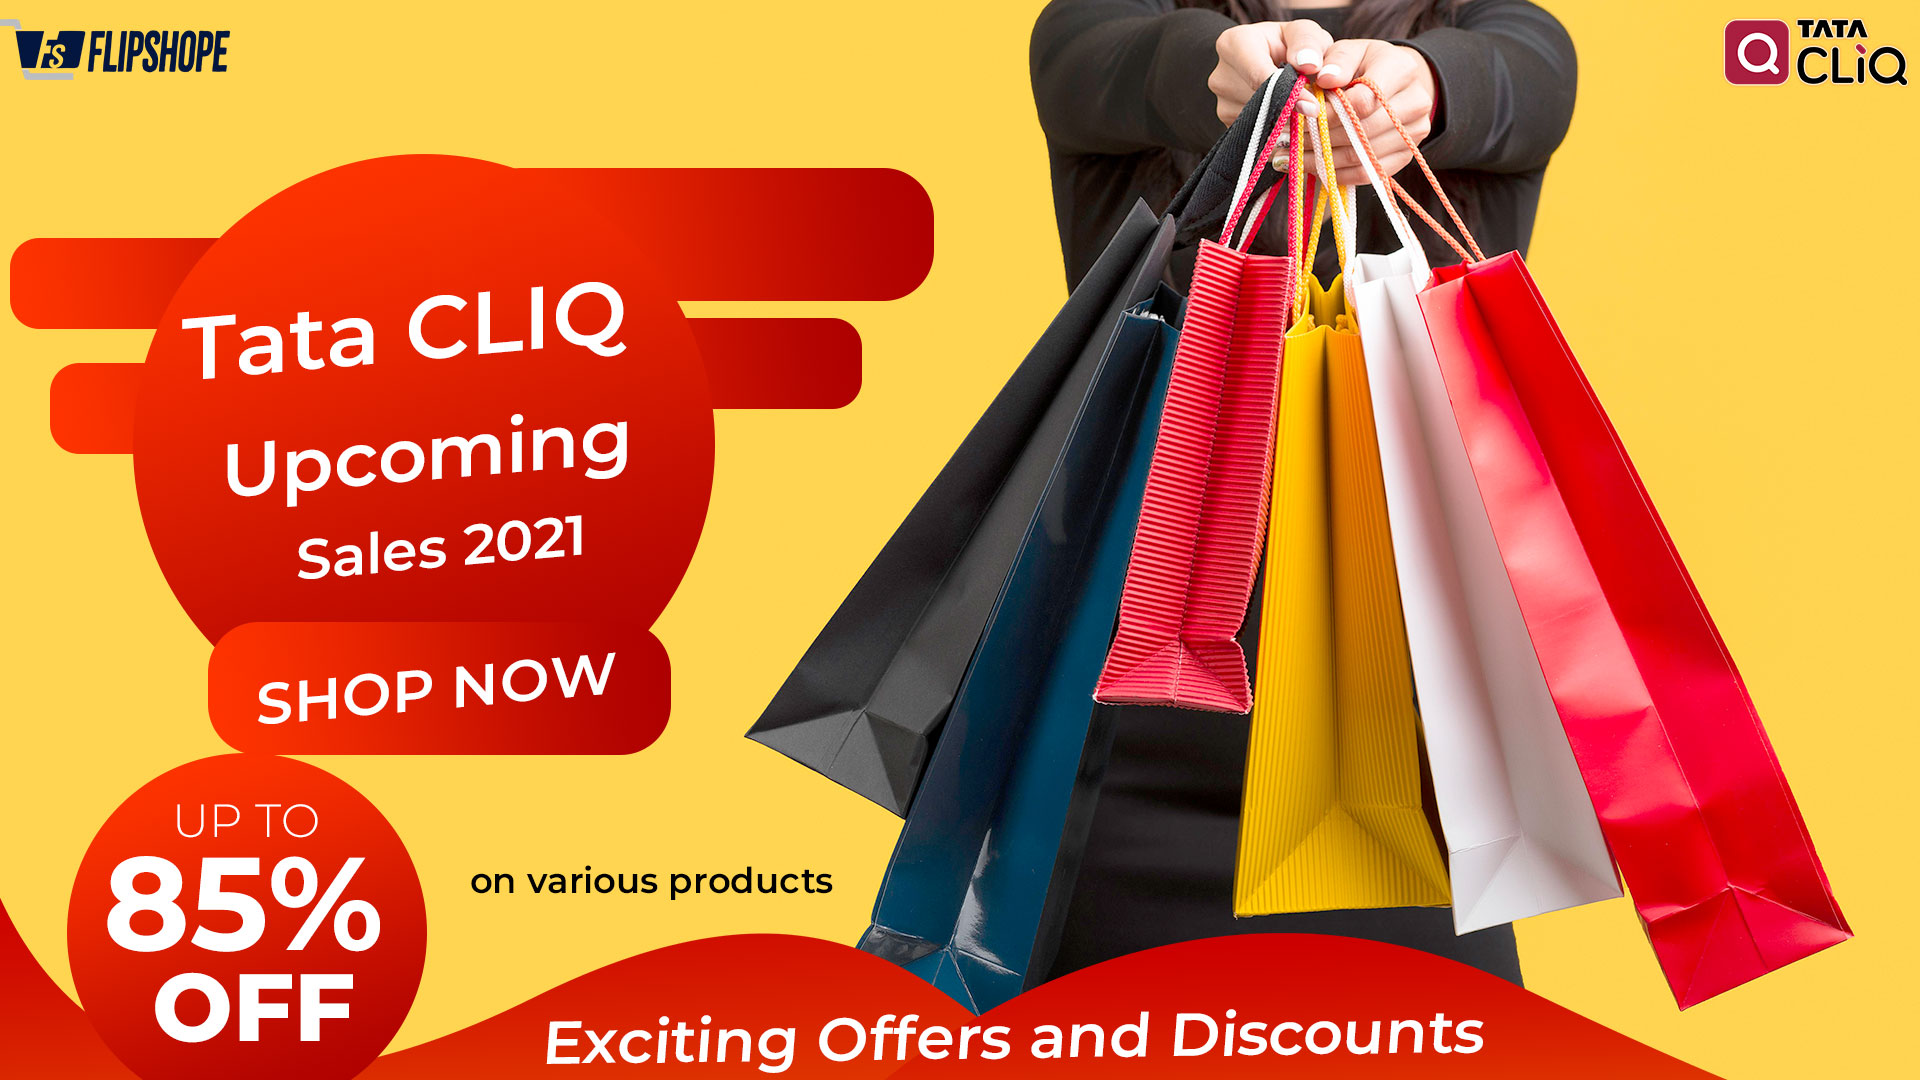 Tata Cliq Upcoming Sale 2021 Dates, Deals, Offers and More.png